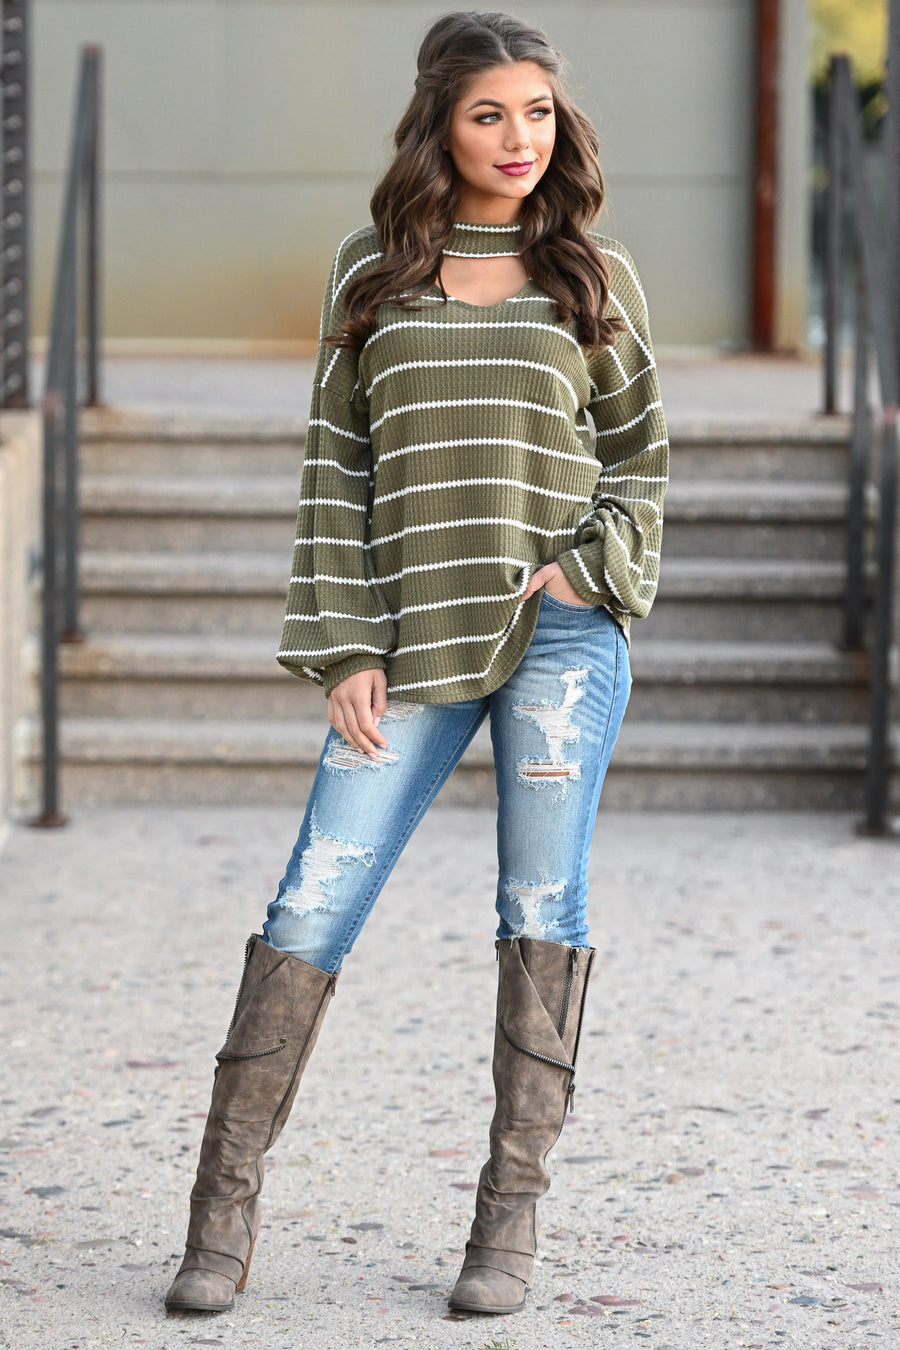 It's Gotta Be Love Striped Top - Olive women's choker neckline puff sleeve top, Closet Candy Boutique 1